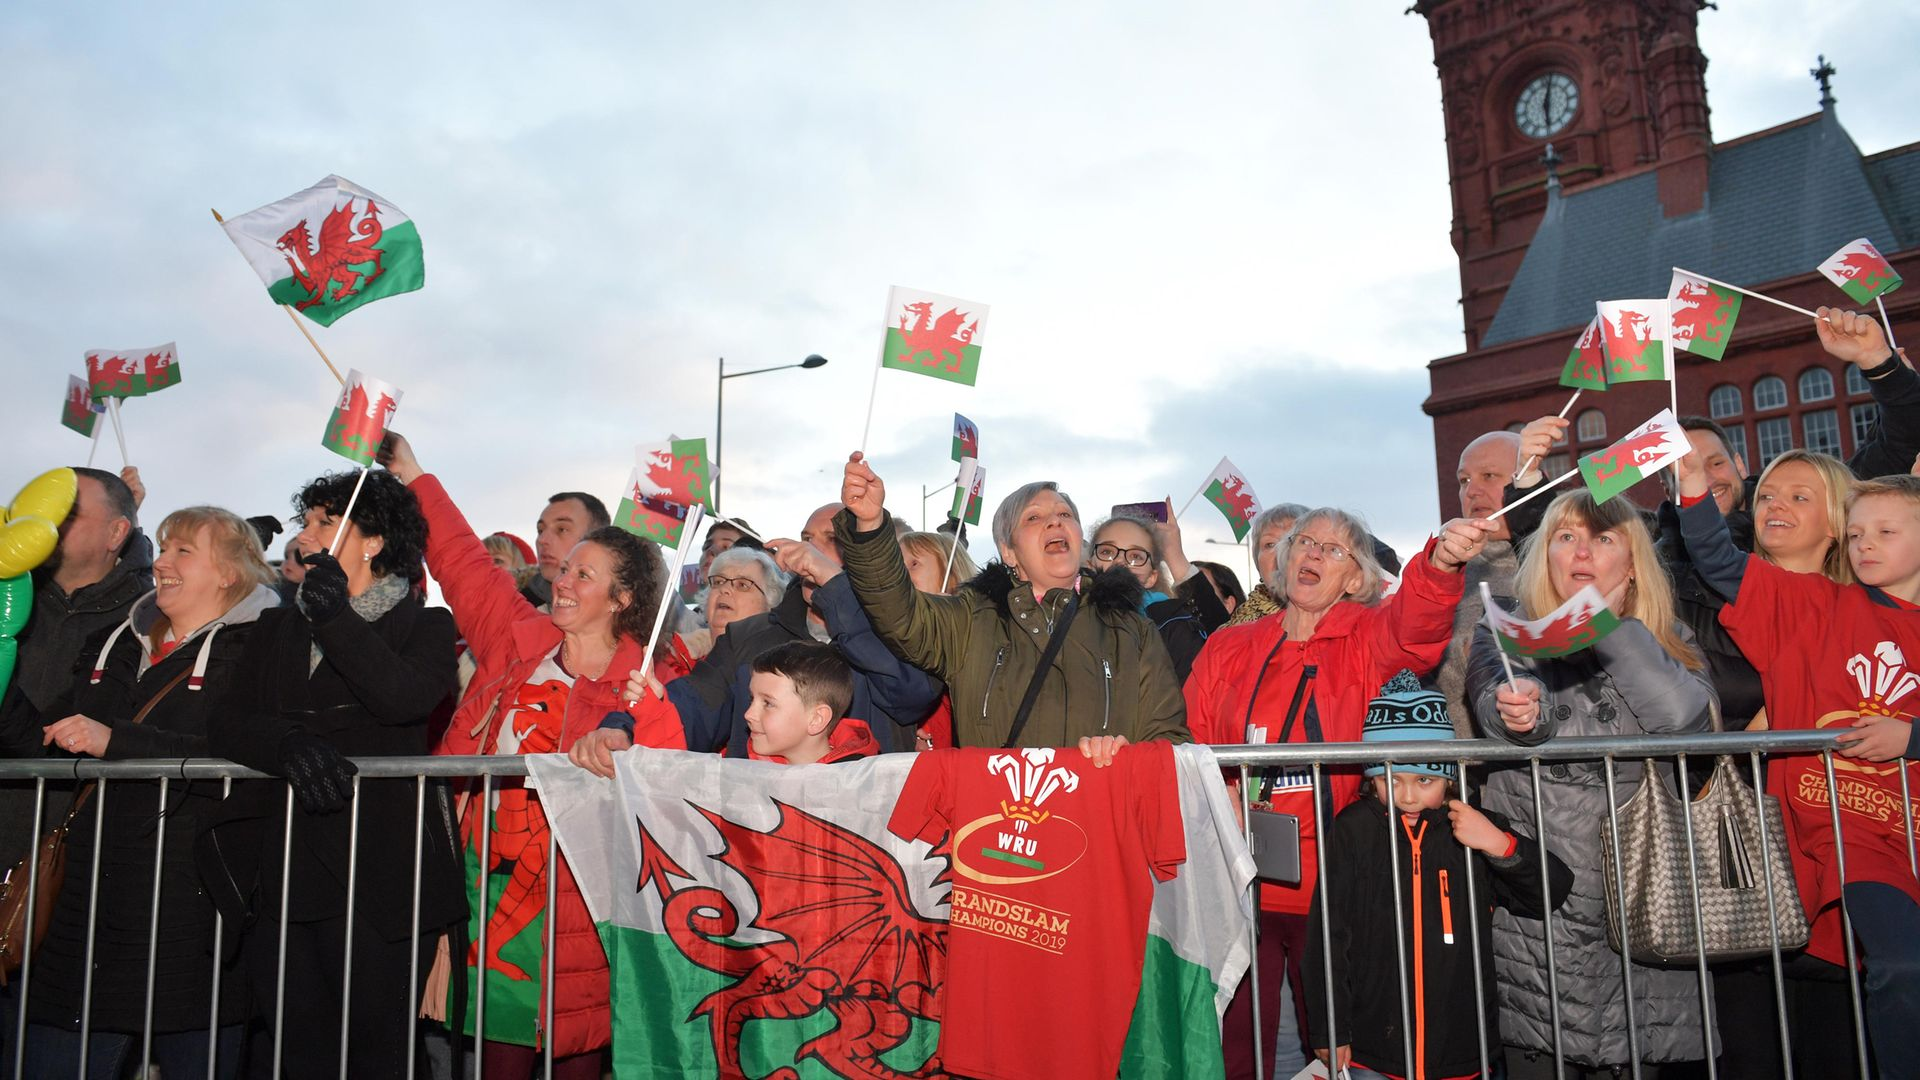 Supporters of Wales during the 2019 Six Nations Grand Slam - Credit: PA